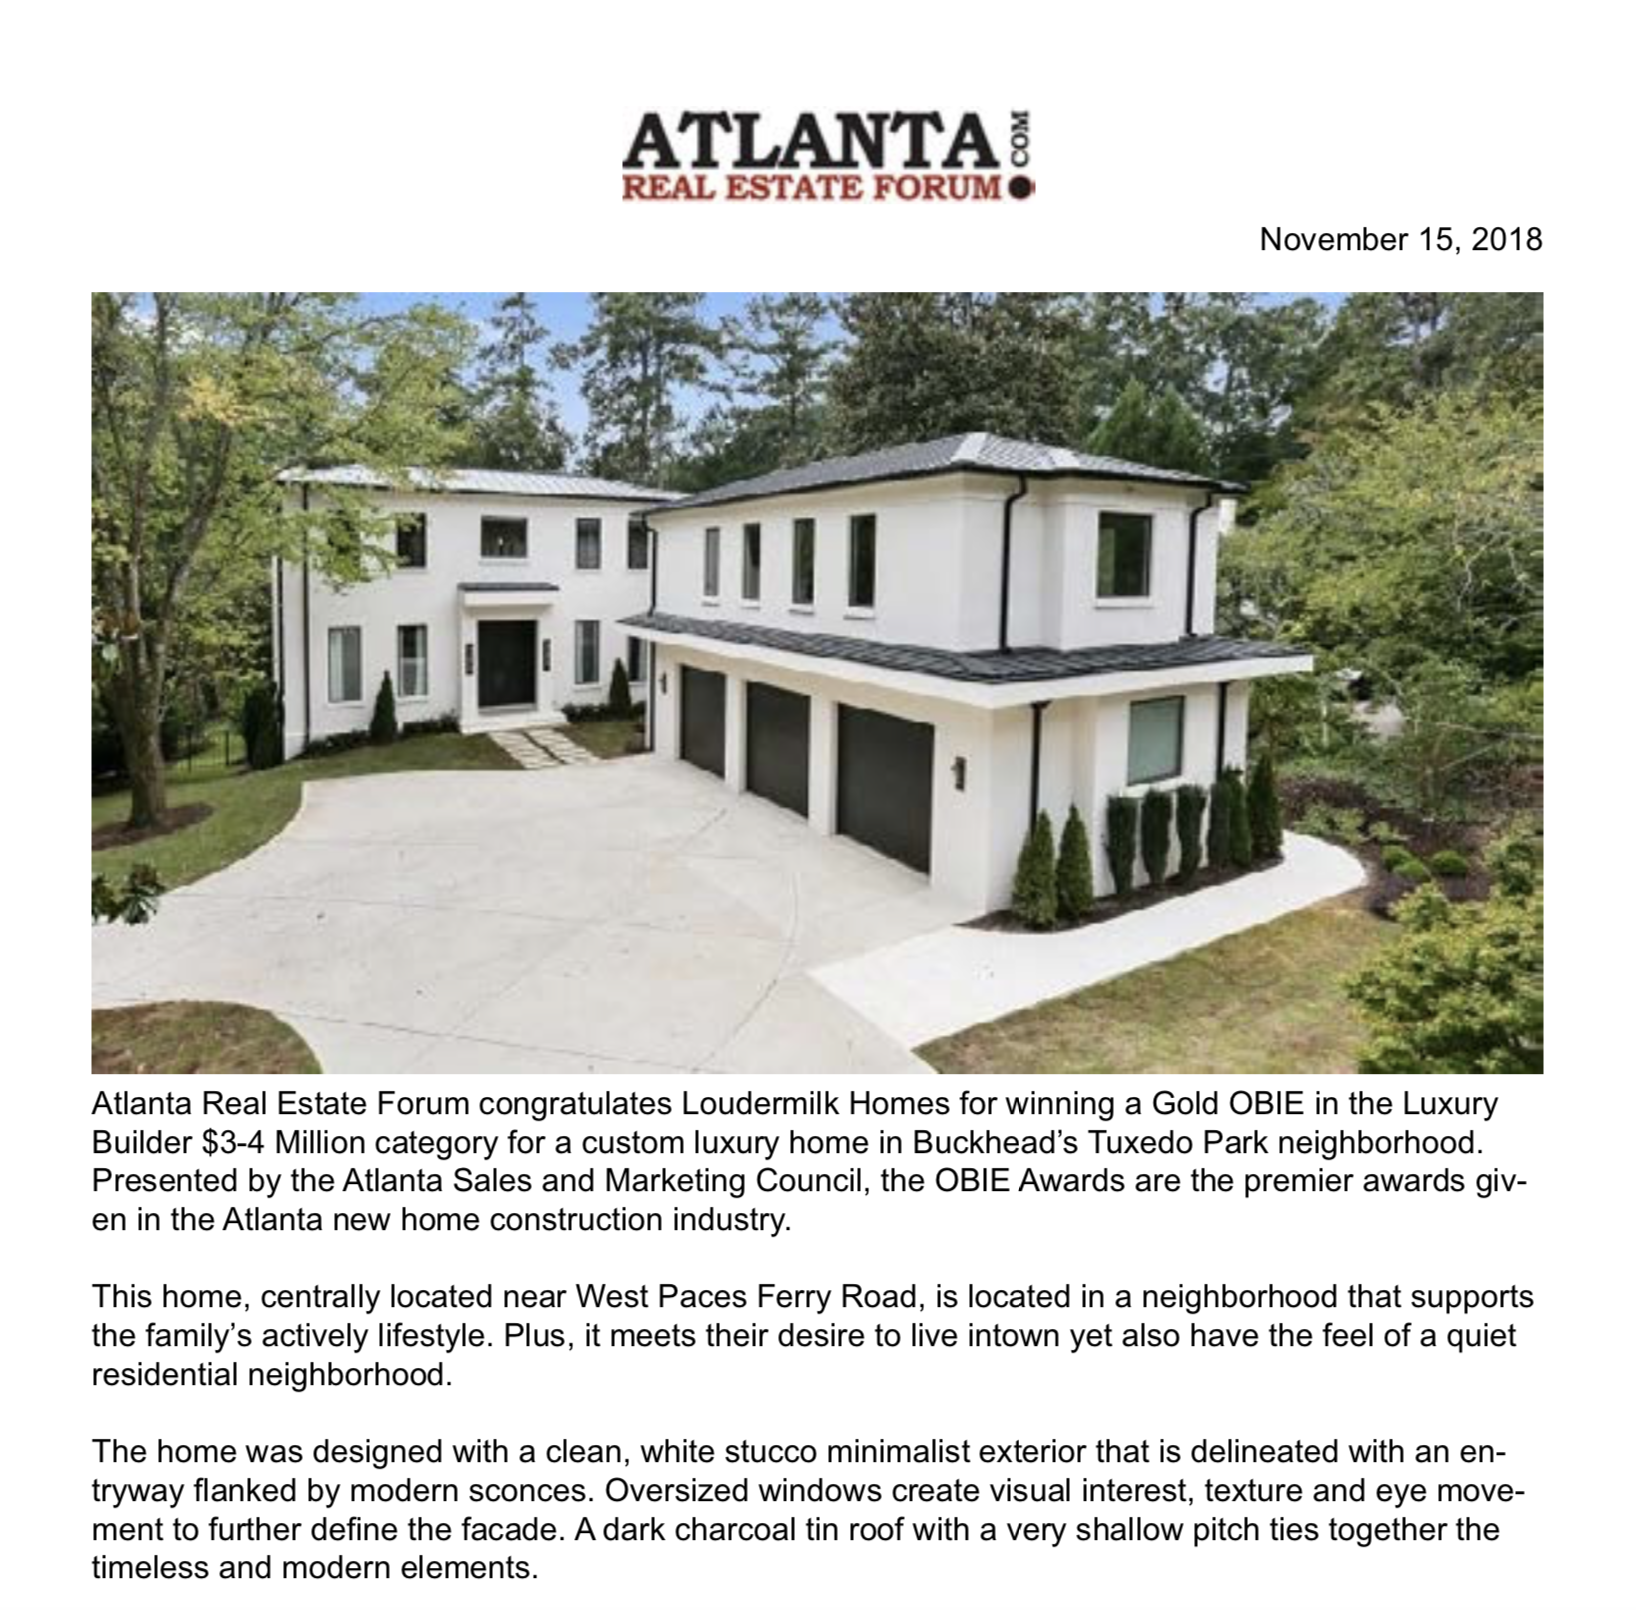 ATLANTA REAL ESTATE FORUM